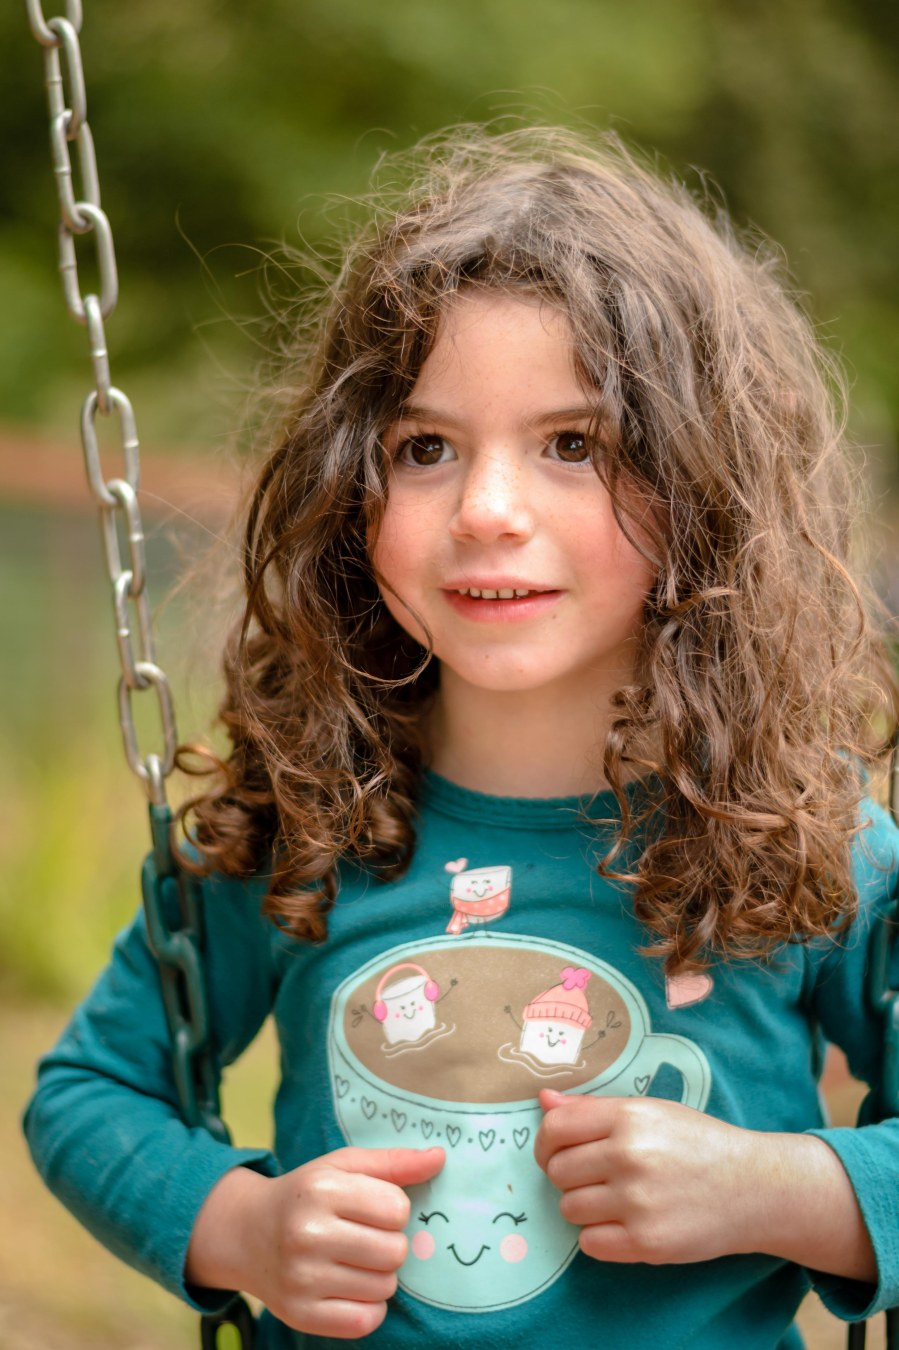 Family photography girl swing hair brown eyes